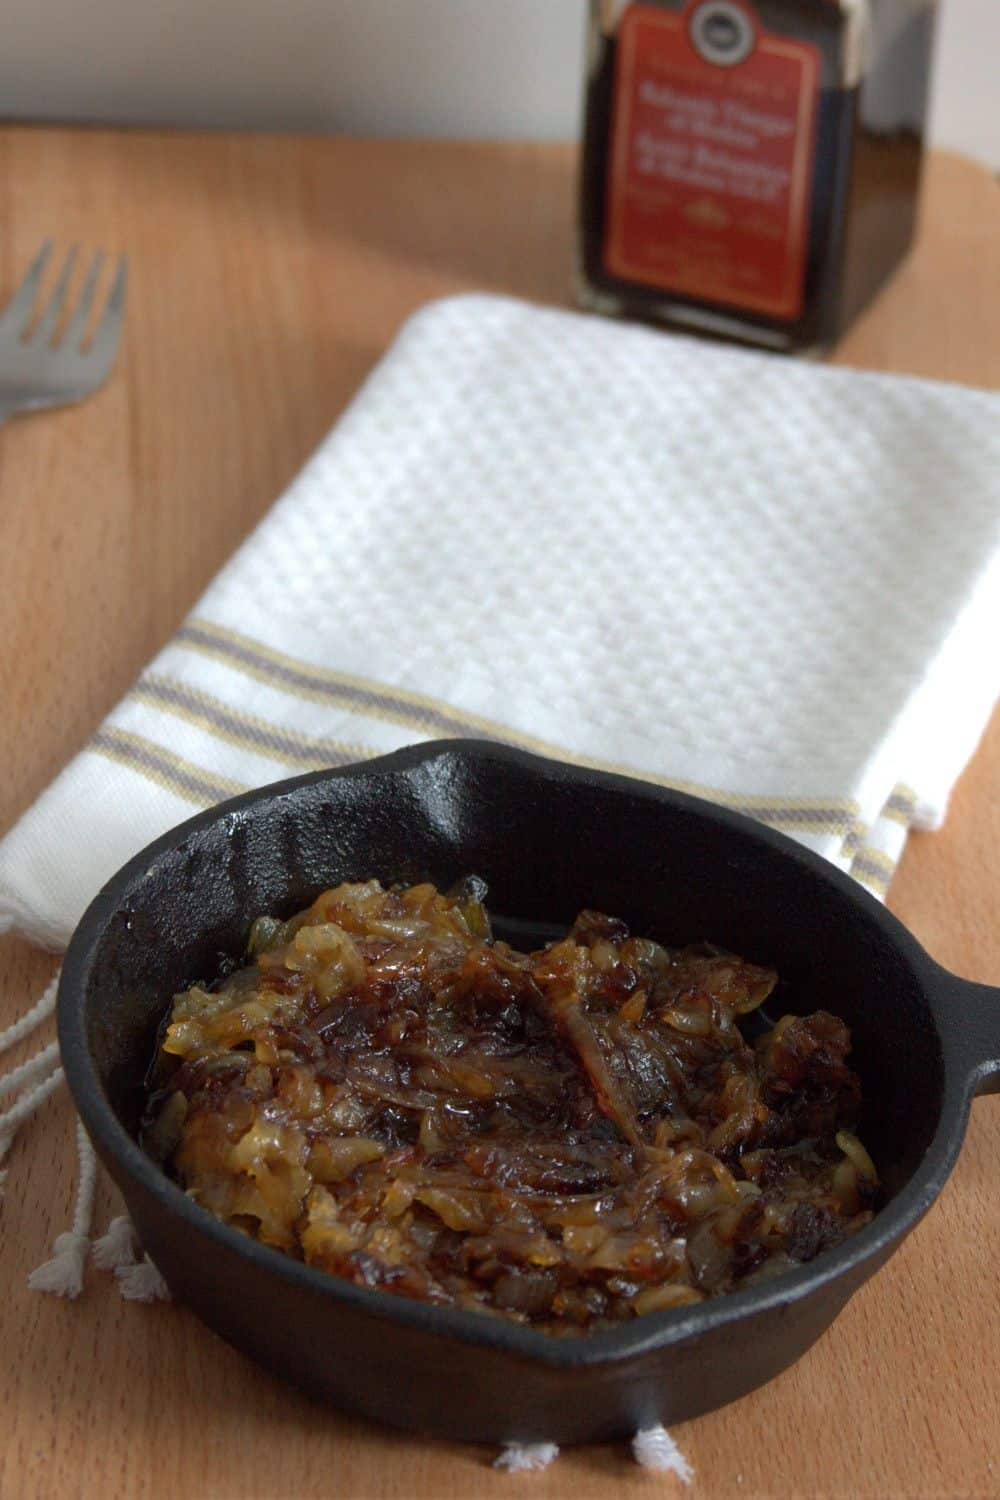 How to make one of the most versatile condiments ever - caramelized onions!